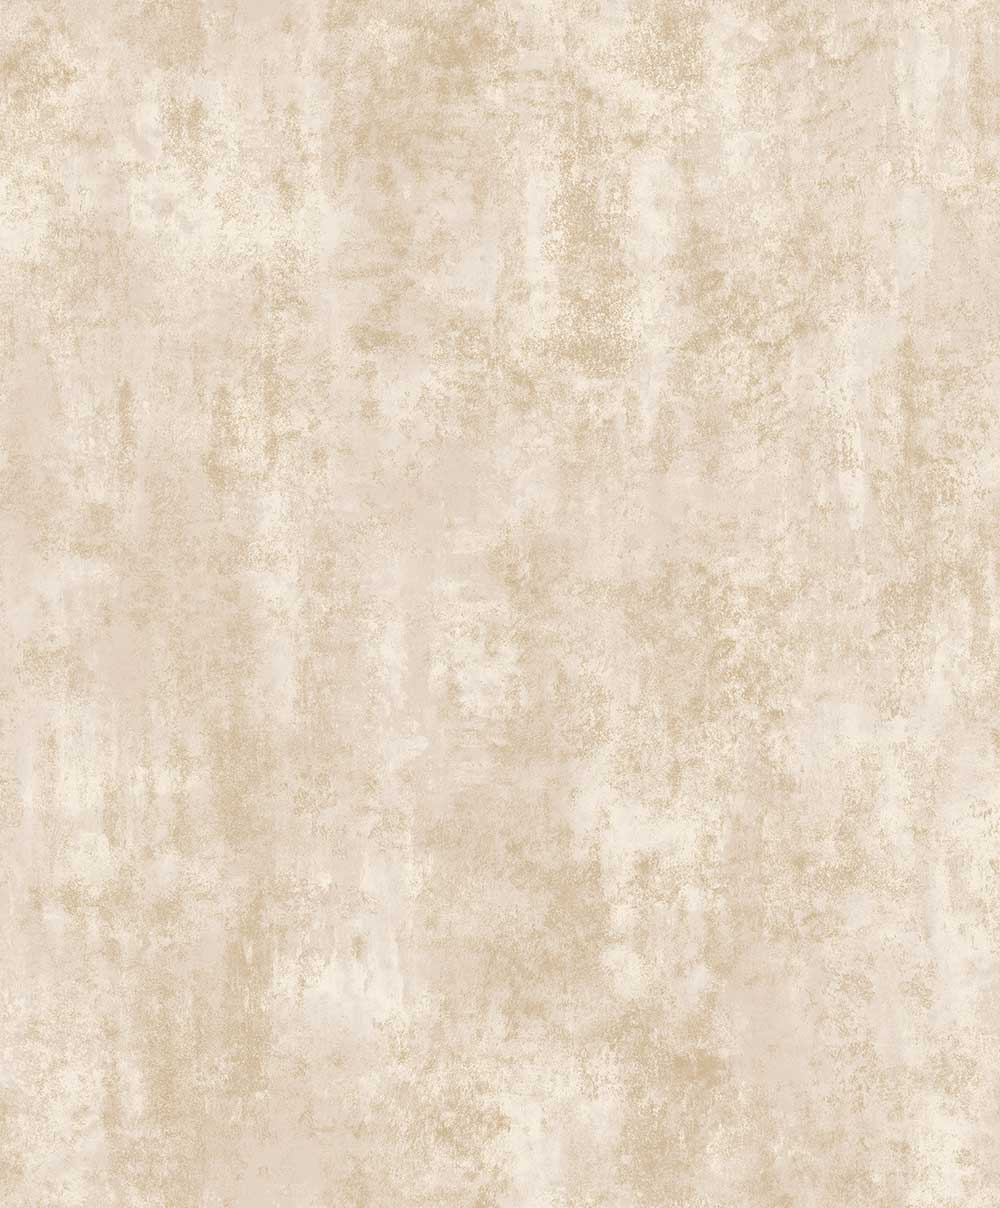 Arthouse Stone Texture Cream Wallpaper - Product code: 903901